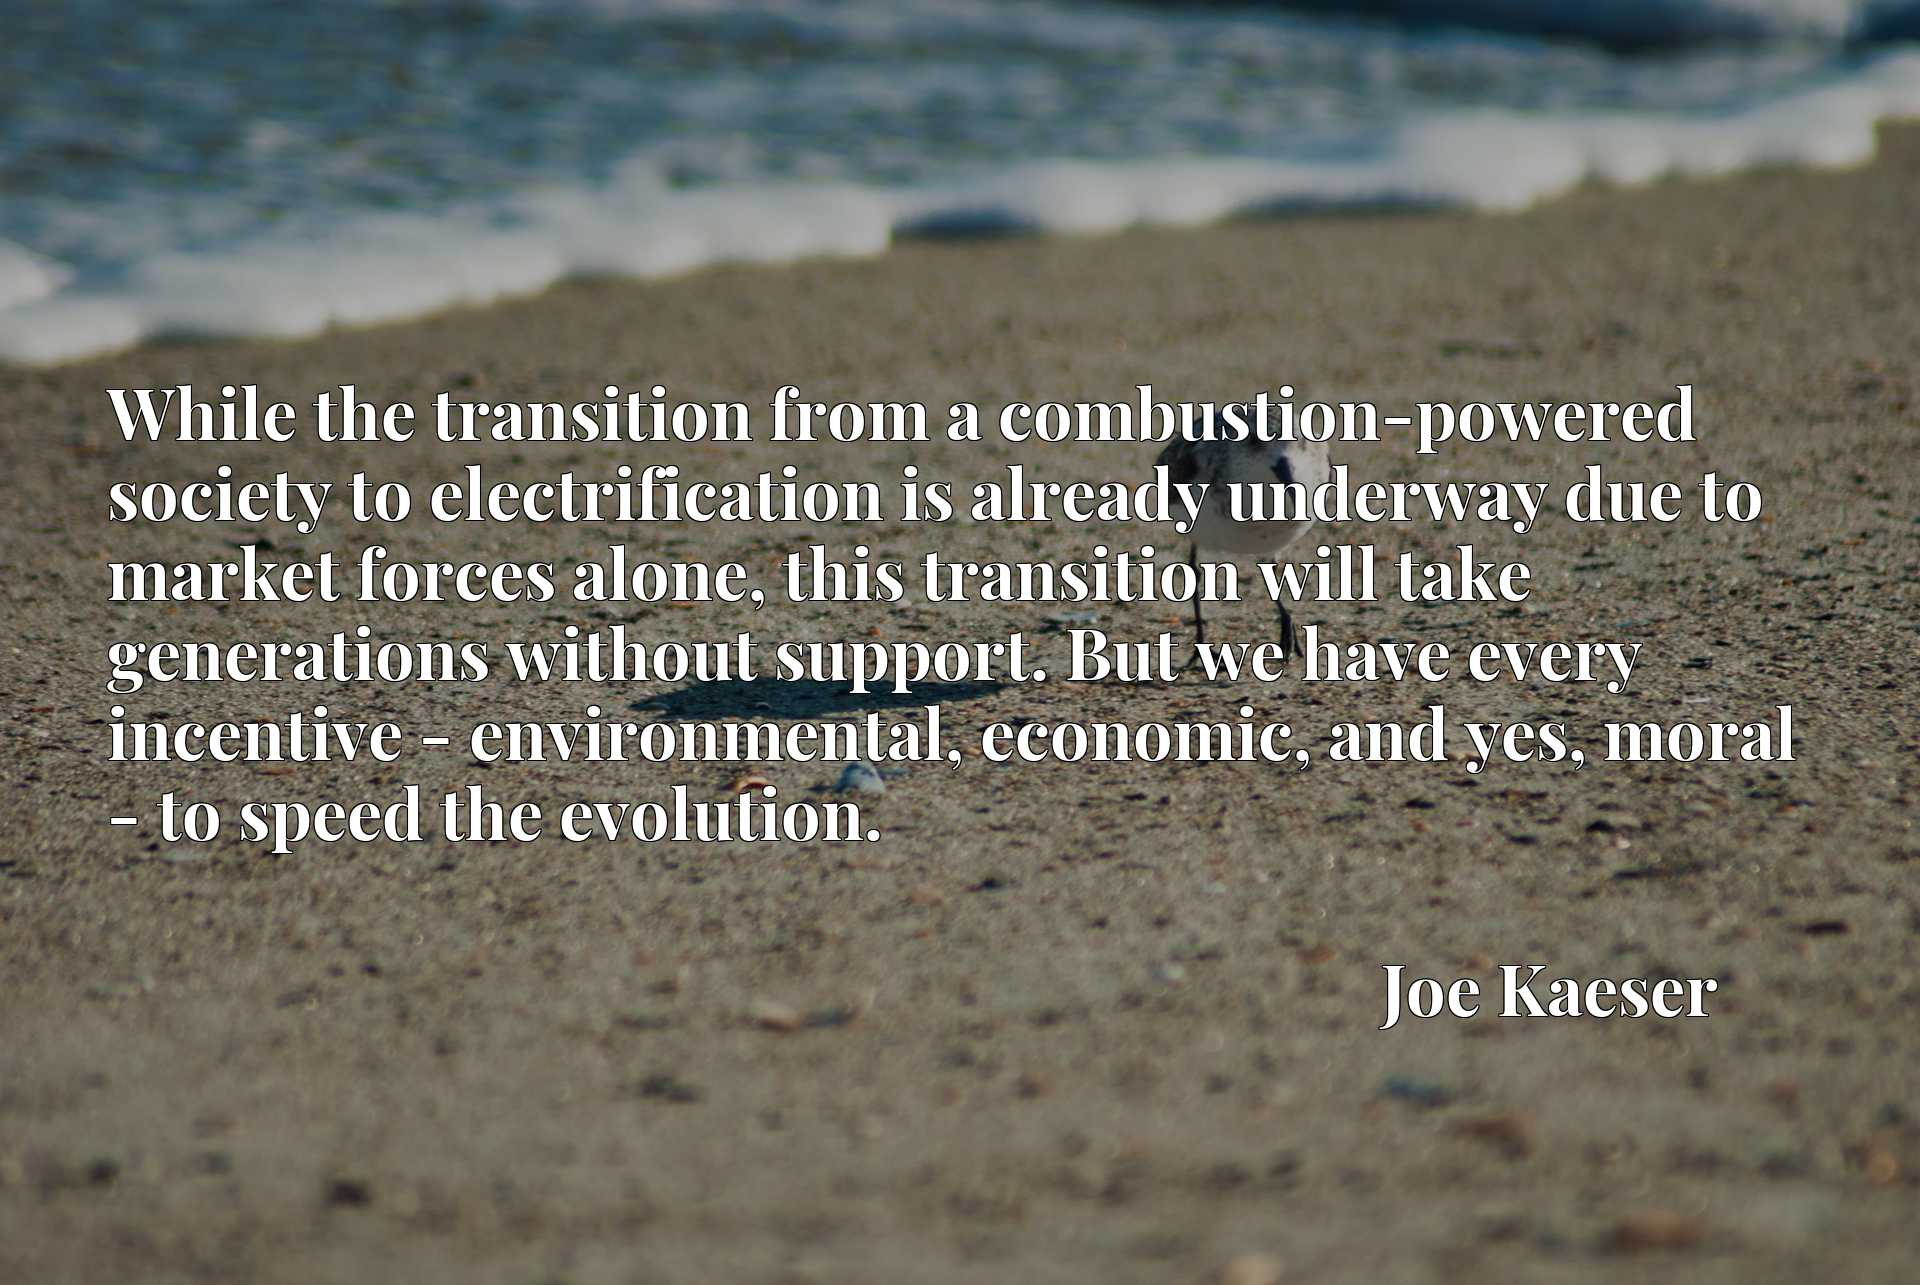 While the transition from a combustion-powered society to electrification is already underway due to market forces alone, this transition will take generations without support. But we have every incentive - environmental, economic, and yes, moral - to speed the evolution.